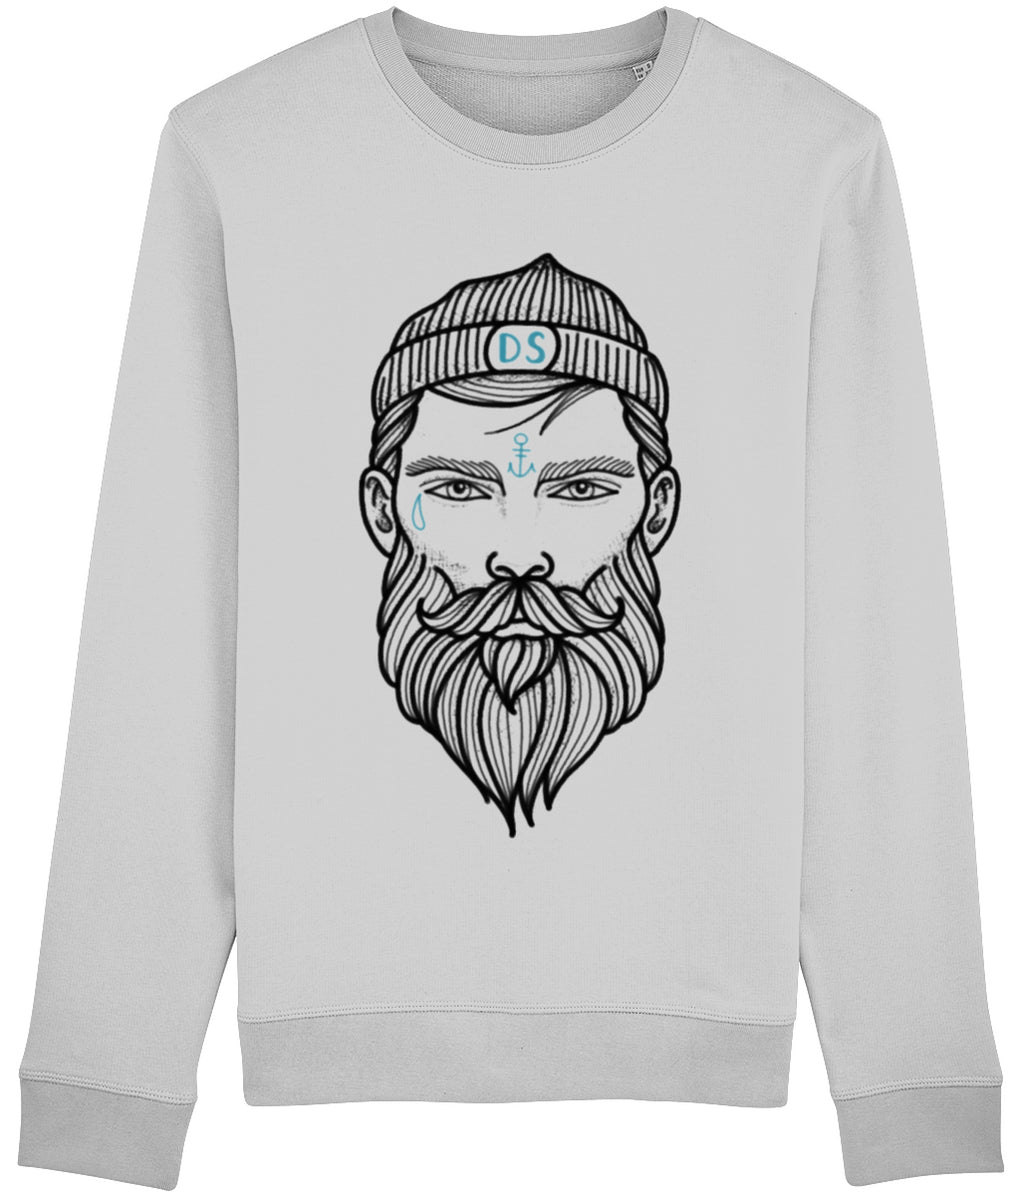 Sailor Tattoo Sweatshirt (Unisex)